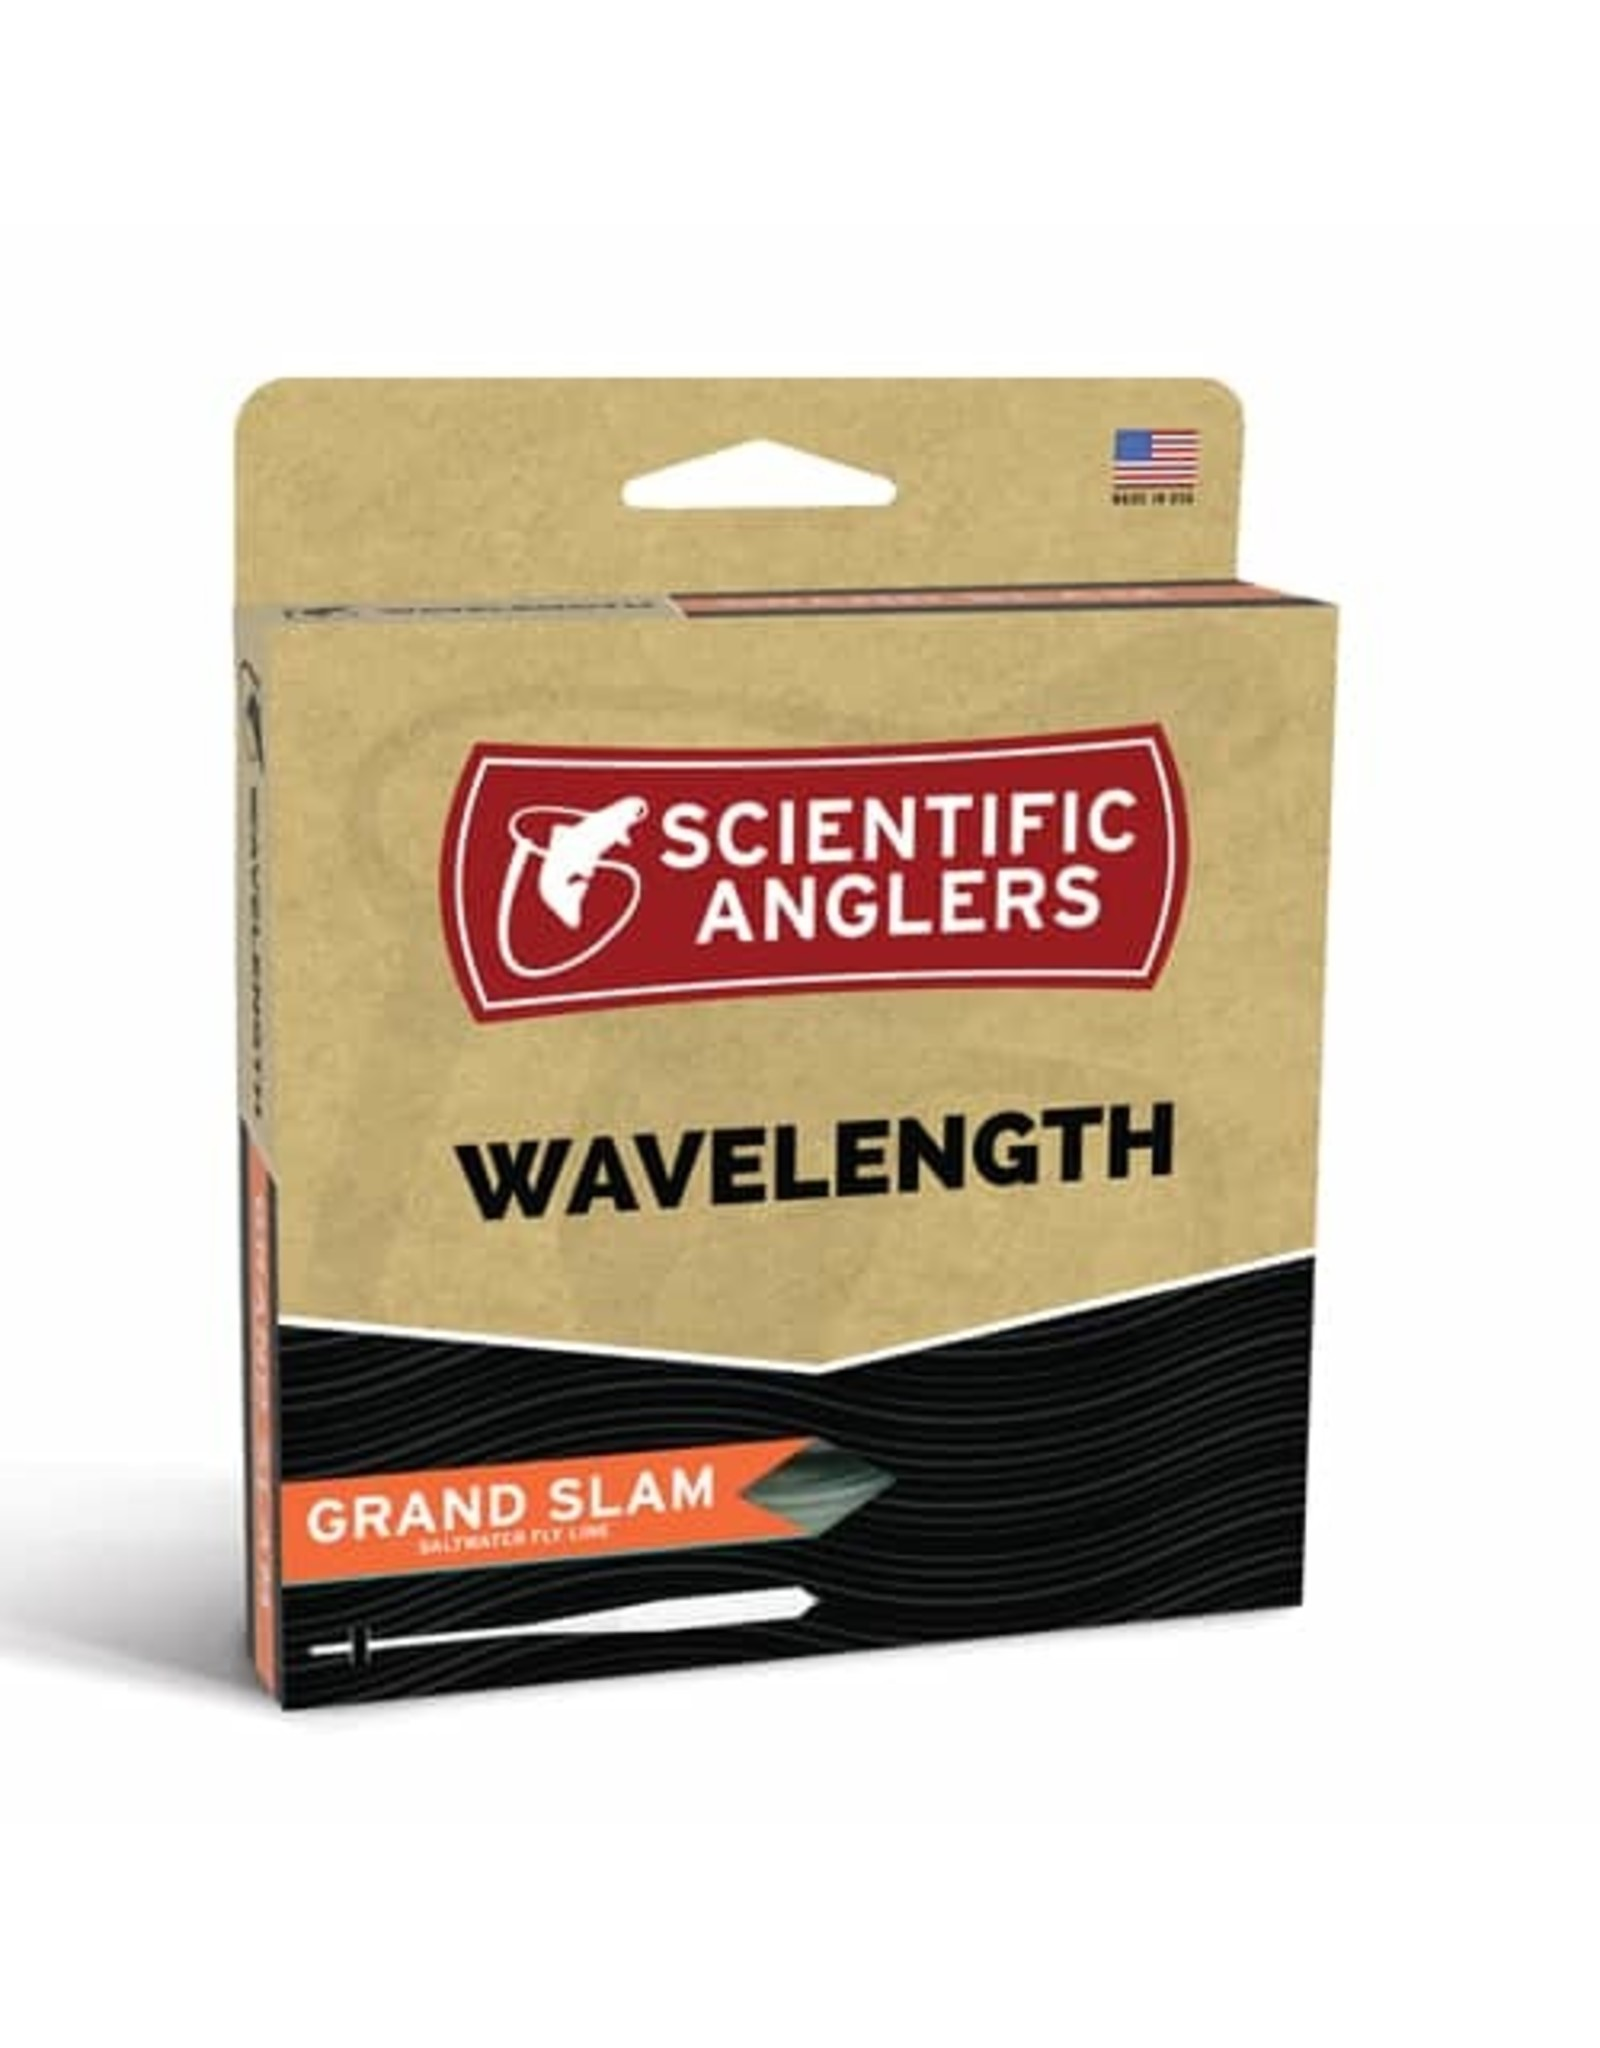 Scientific Anglers Scientific Anglers - Wavelength Grand Slam Fly Line